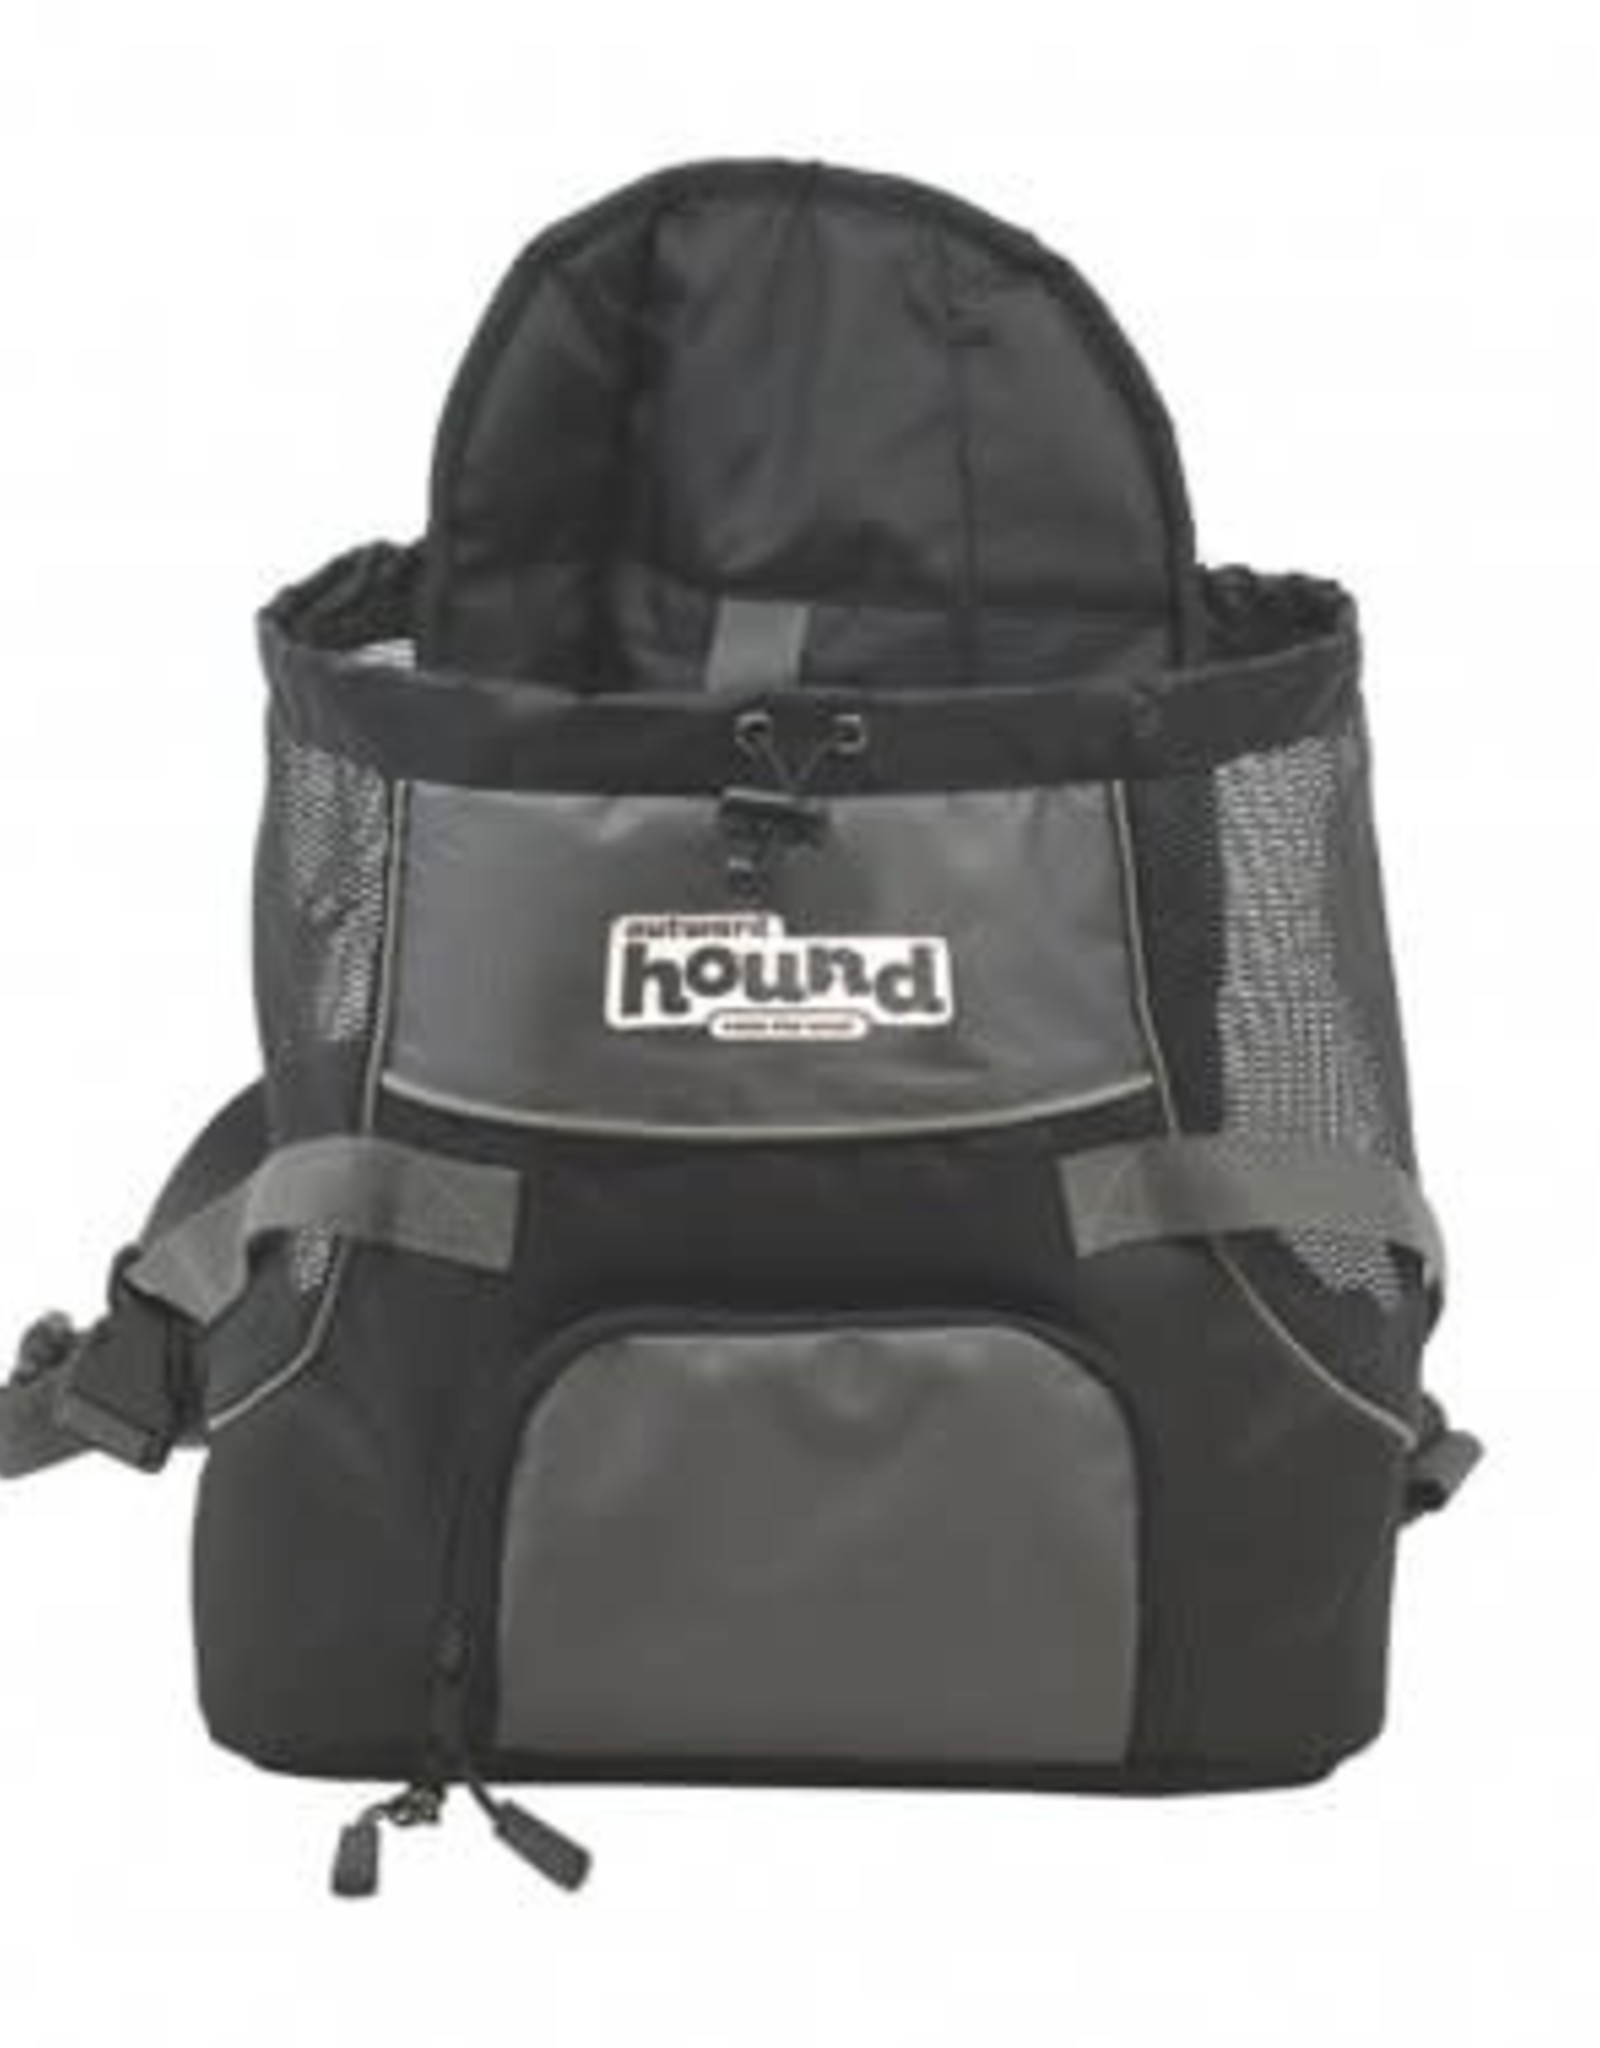 Outward Hound Pooch Pouch Carrier Gray